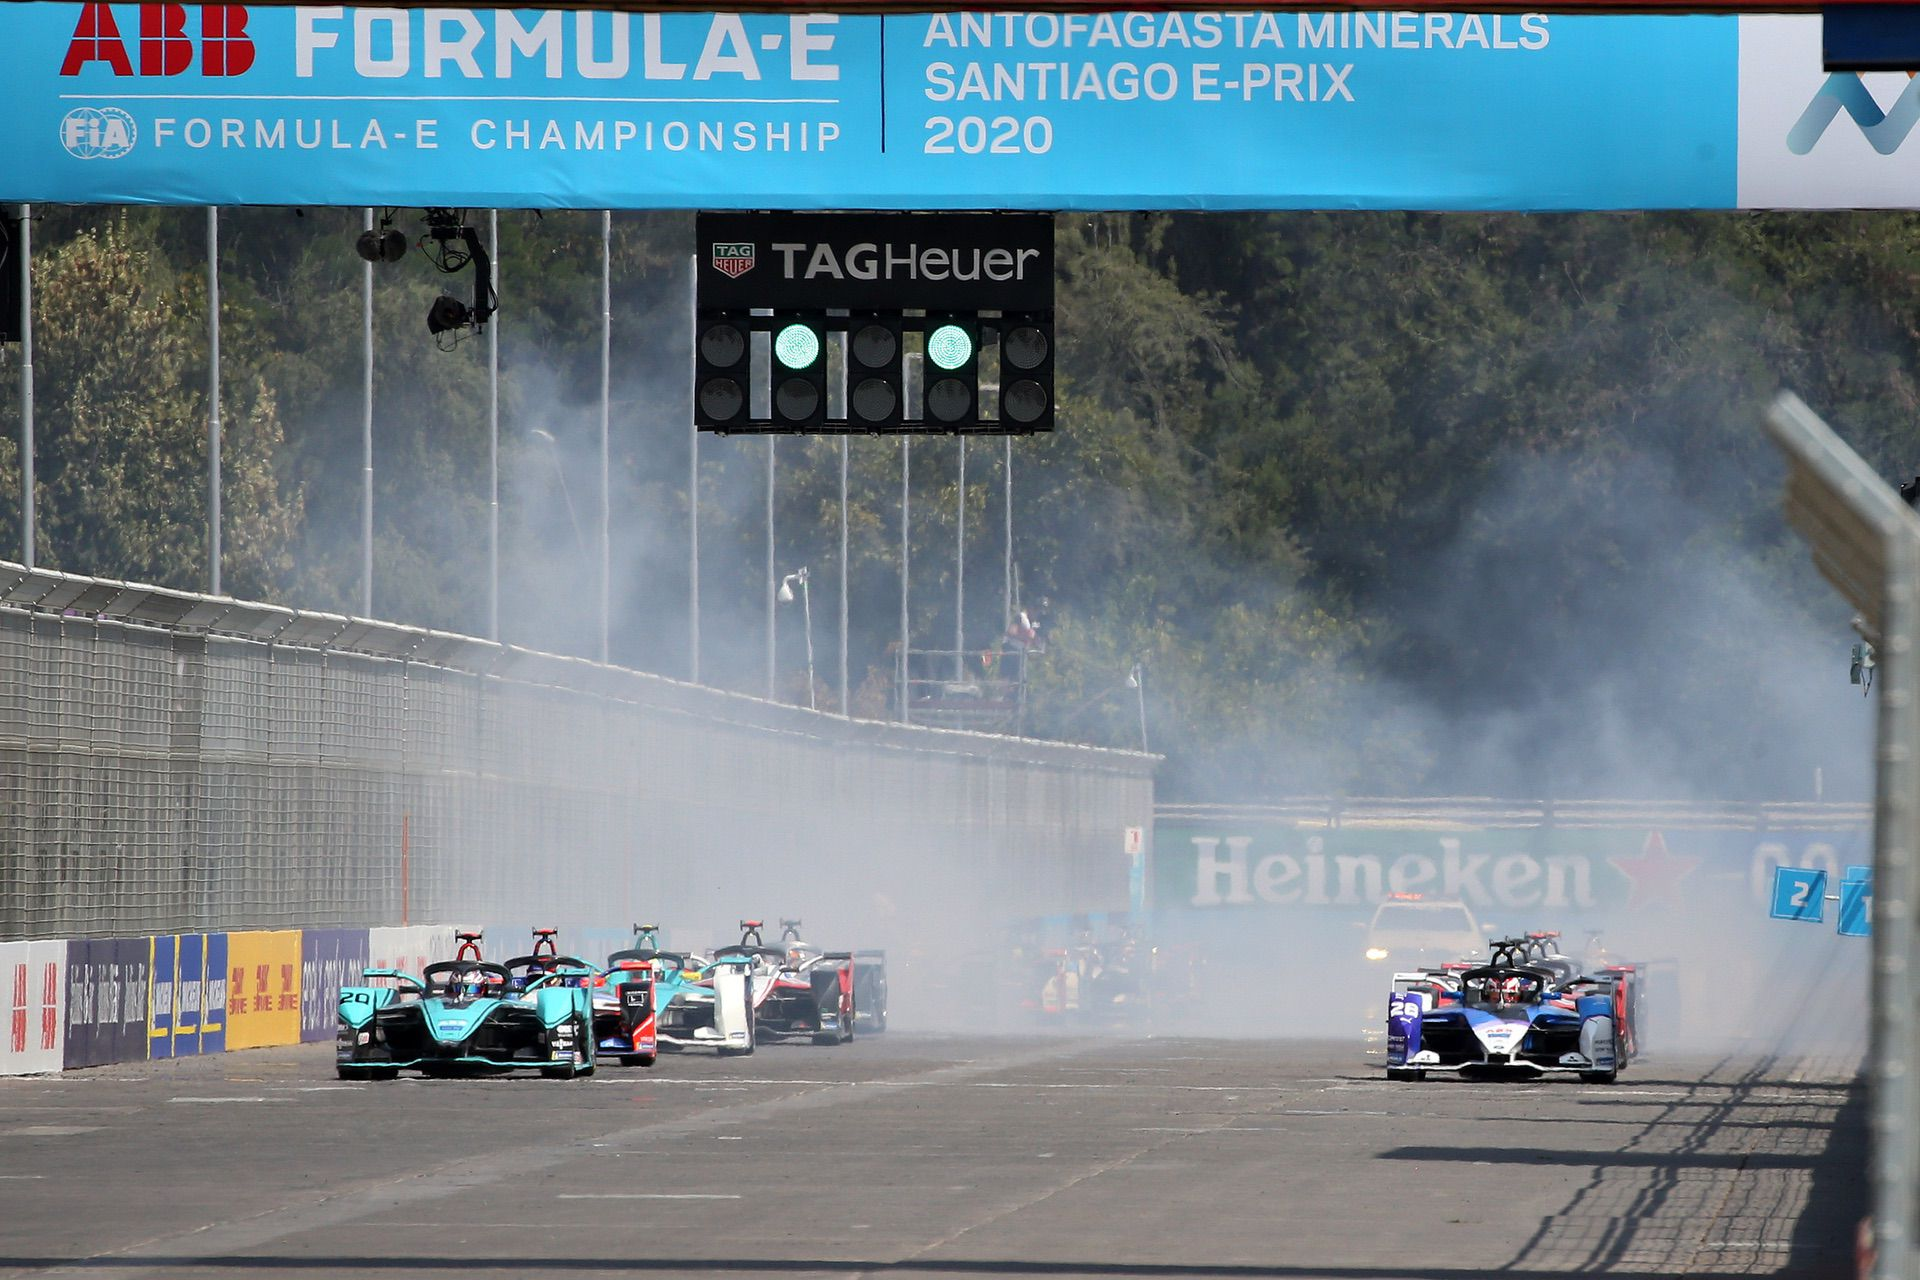 Santiago E Prix Maximilian Gunther Takes The Win For Bmw I Andretti Motorsport Upcoming Cars Library Up To Date